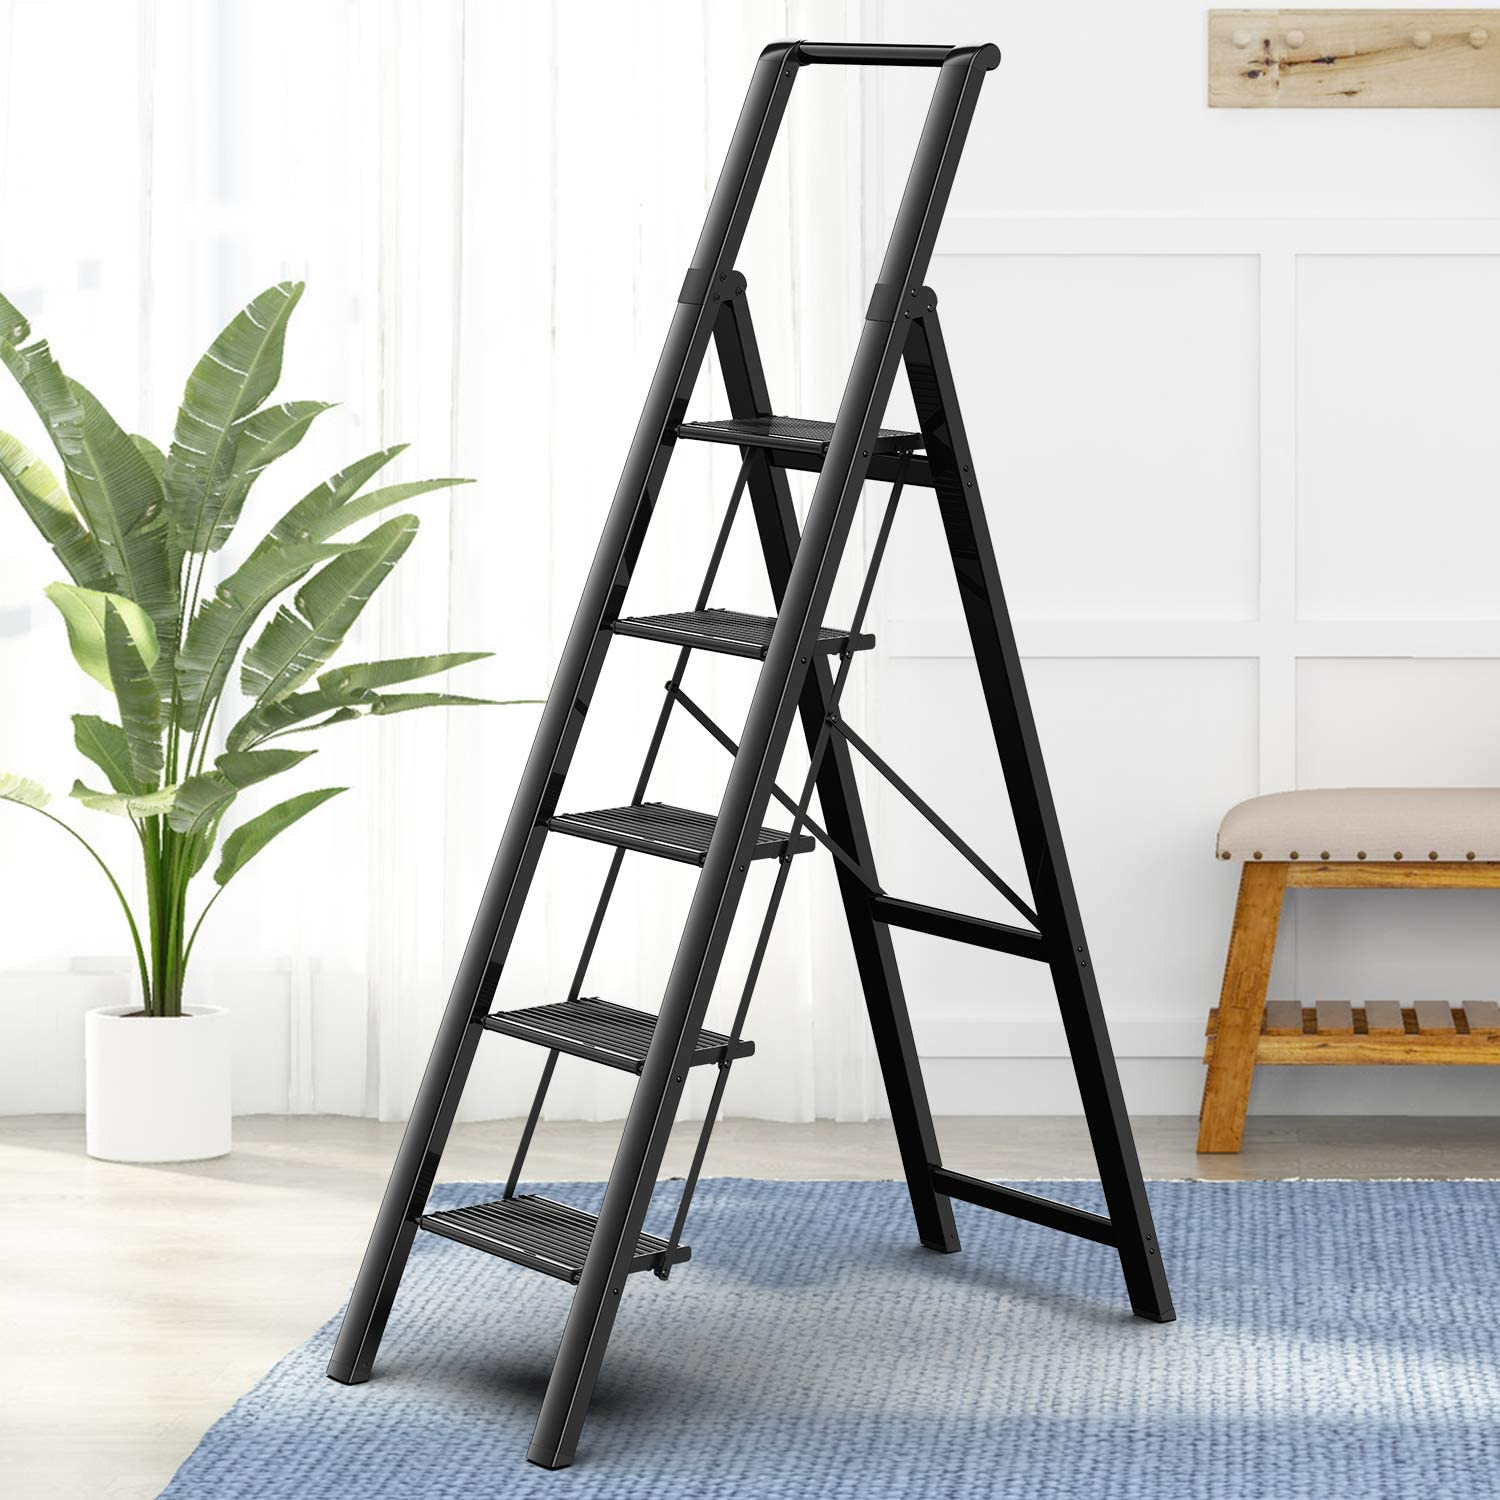 GameGem 5 Steps Lightweight Aluminum Ladder Folding Step Stool Stepladders with Anti-Slip and Wide Pedal for Home and Kitchen Use Space Saving (Black)